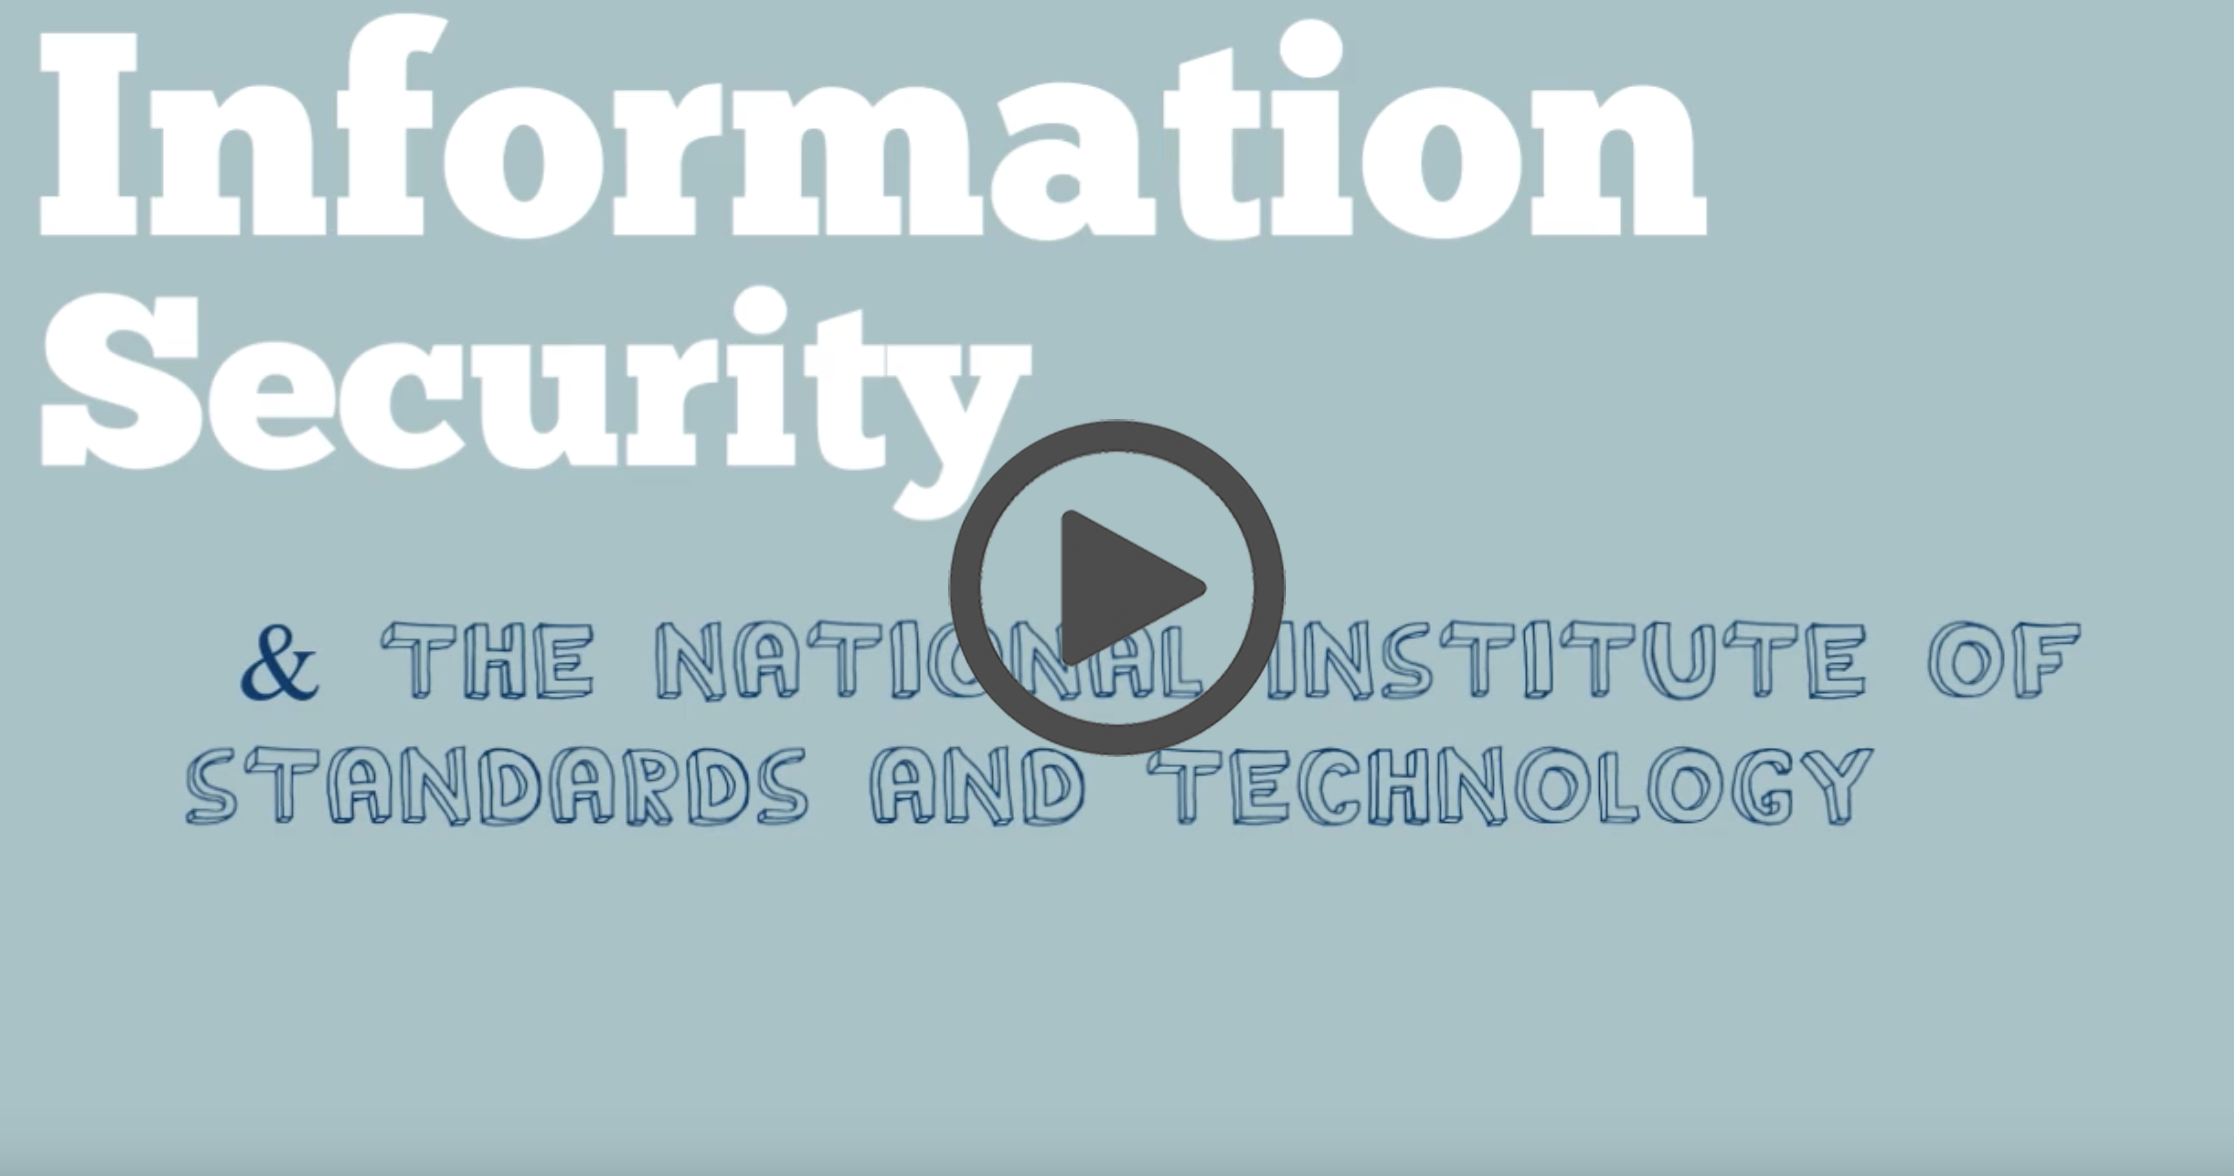 Information Security video image click to watch